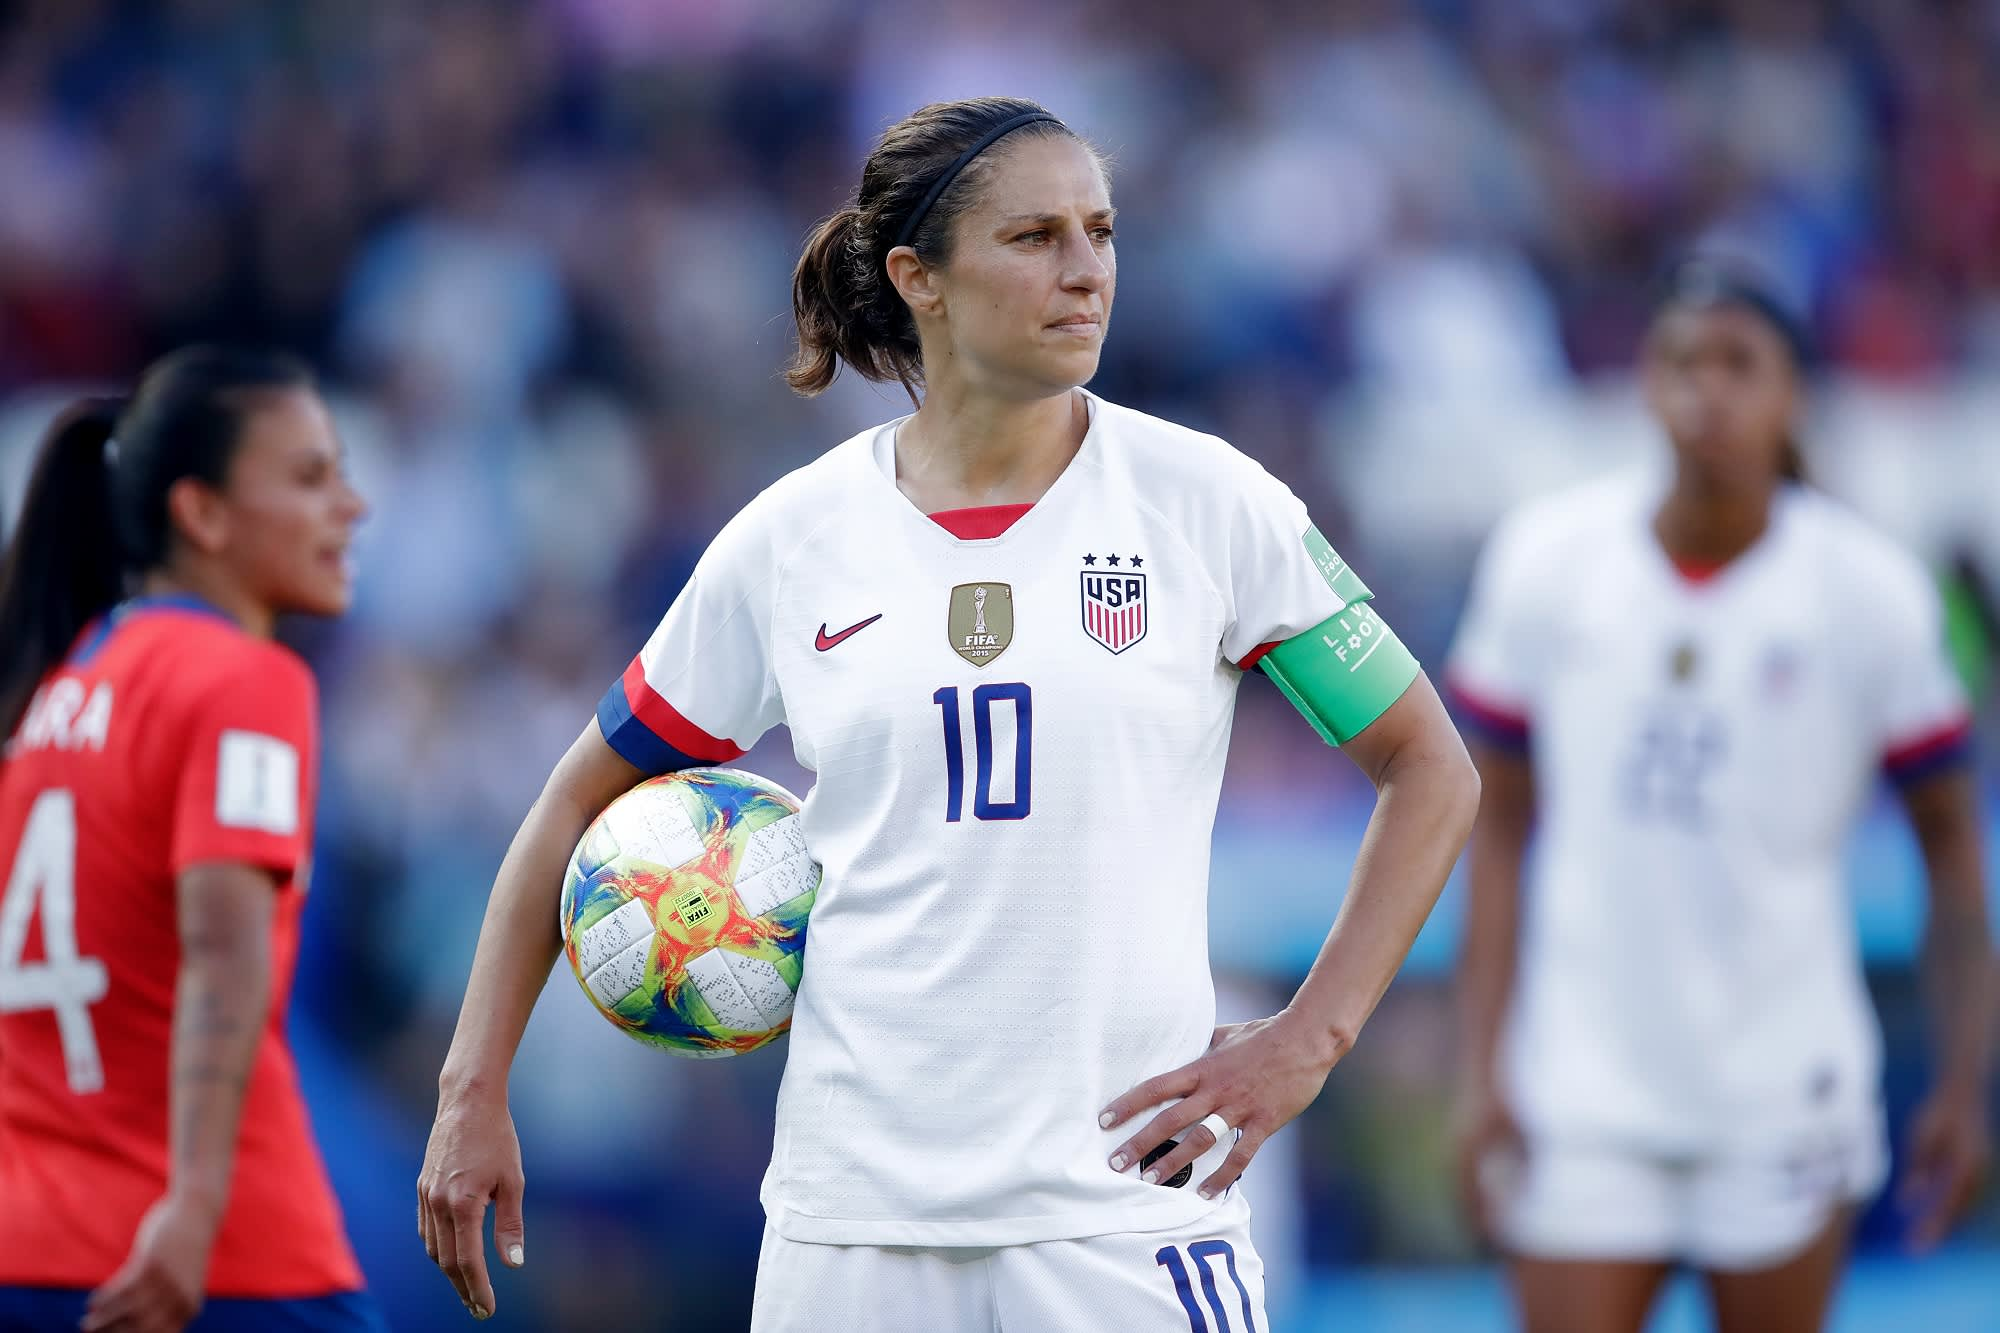 US women's soccer games now generate more revenue than men's—but the players still earn less